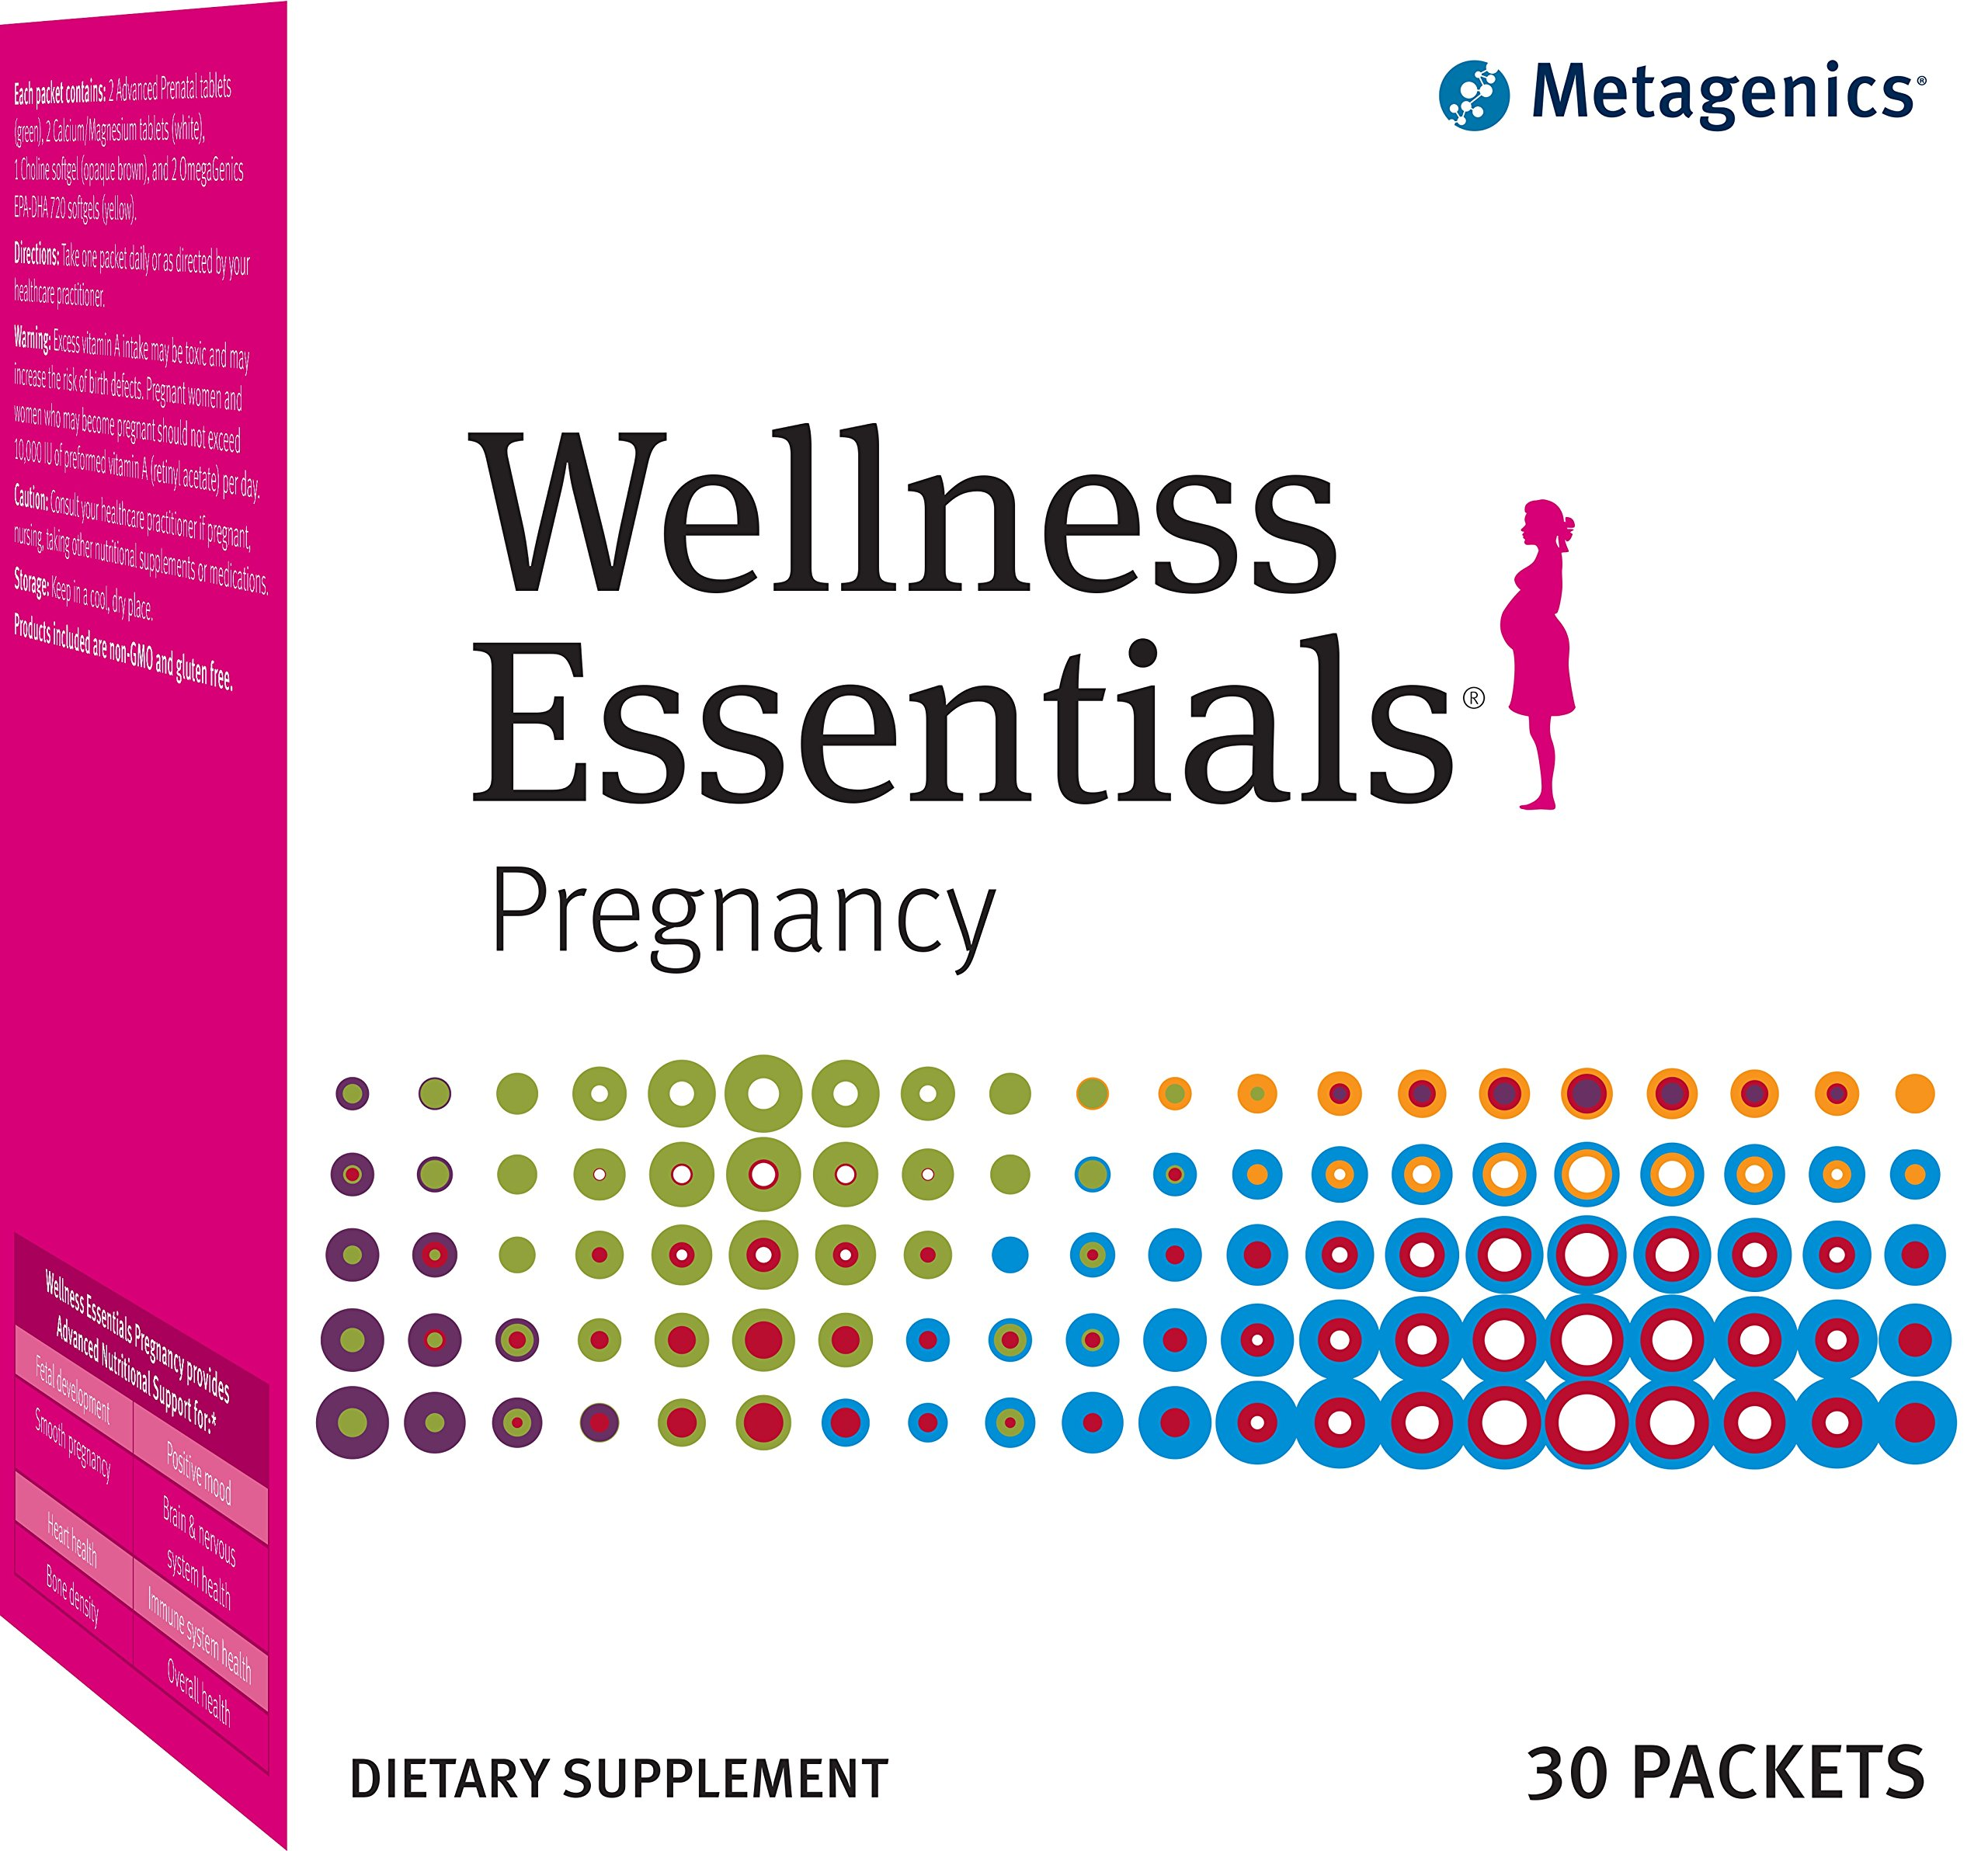 Metagenics - Wellness Essentials Pregnancy, 30 Count by Metagenics